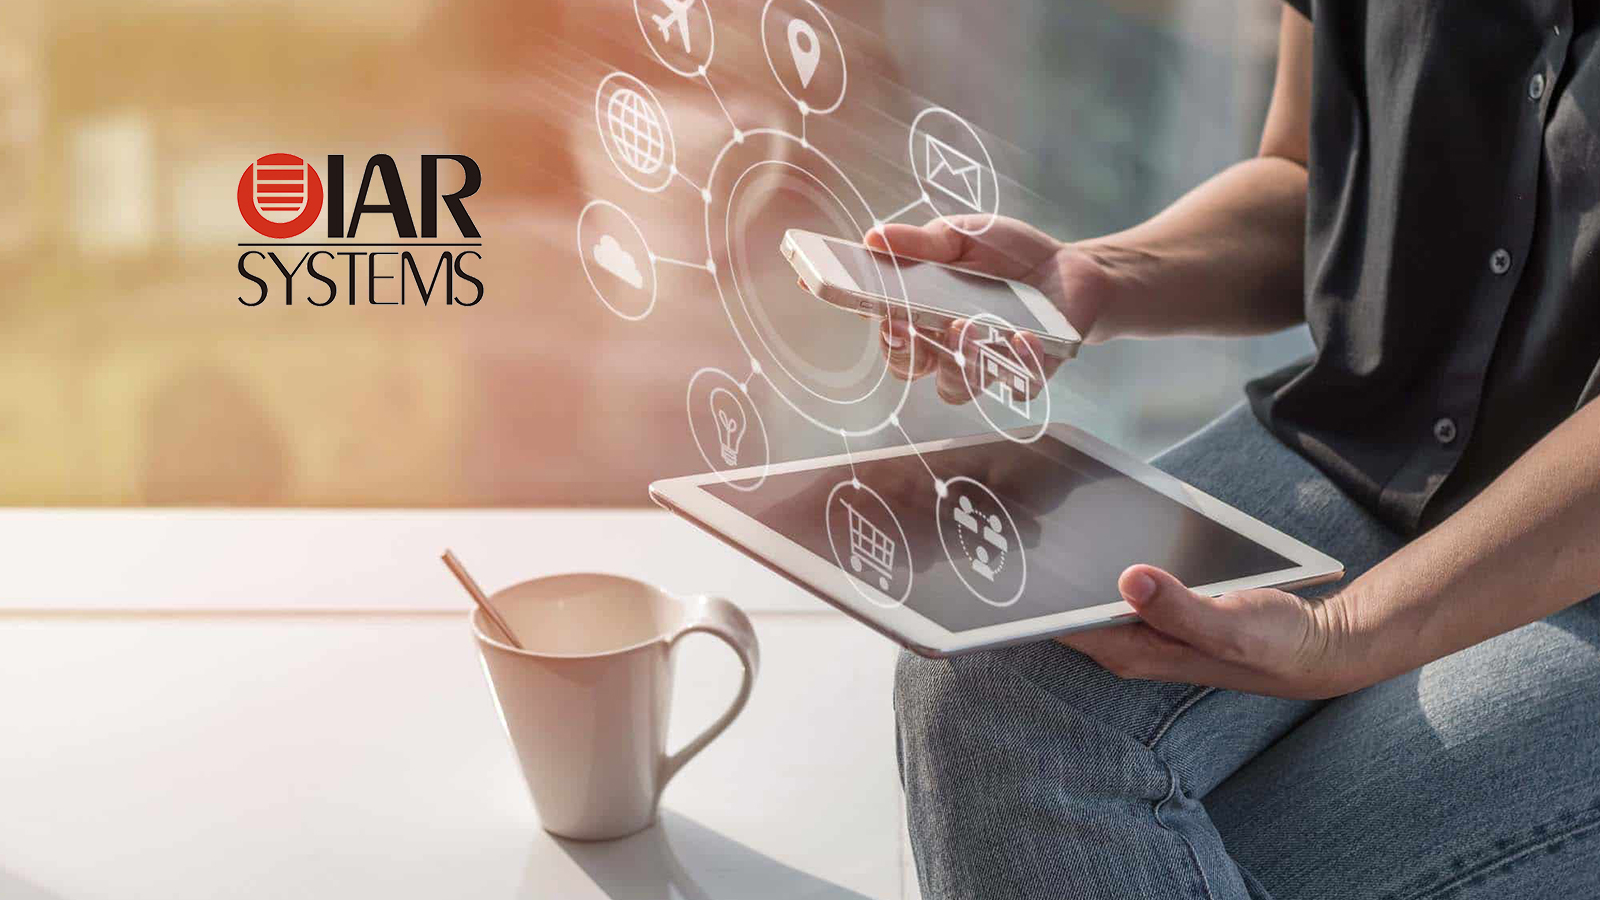 IAR Systems Leads the Way for Secure IoT Development Based